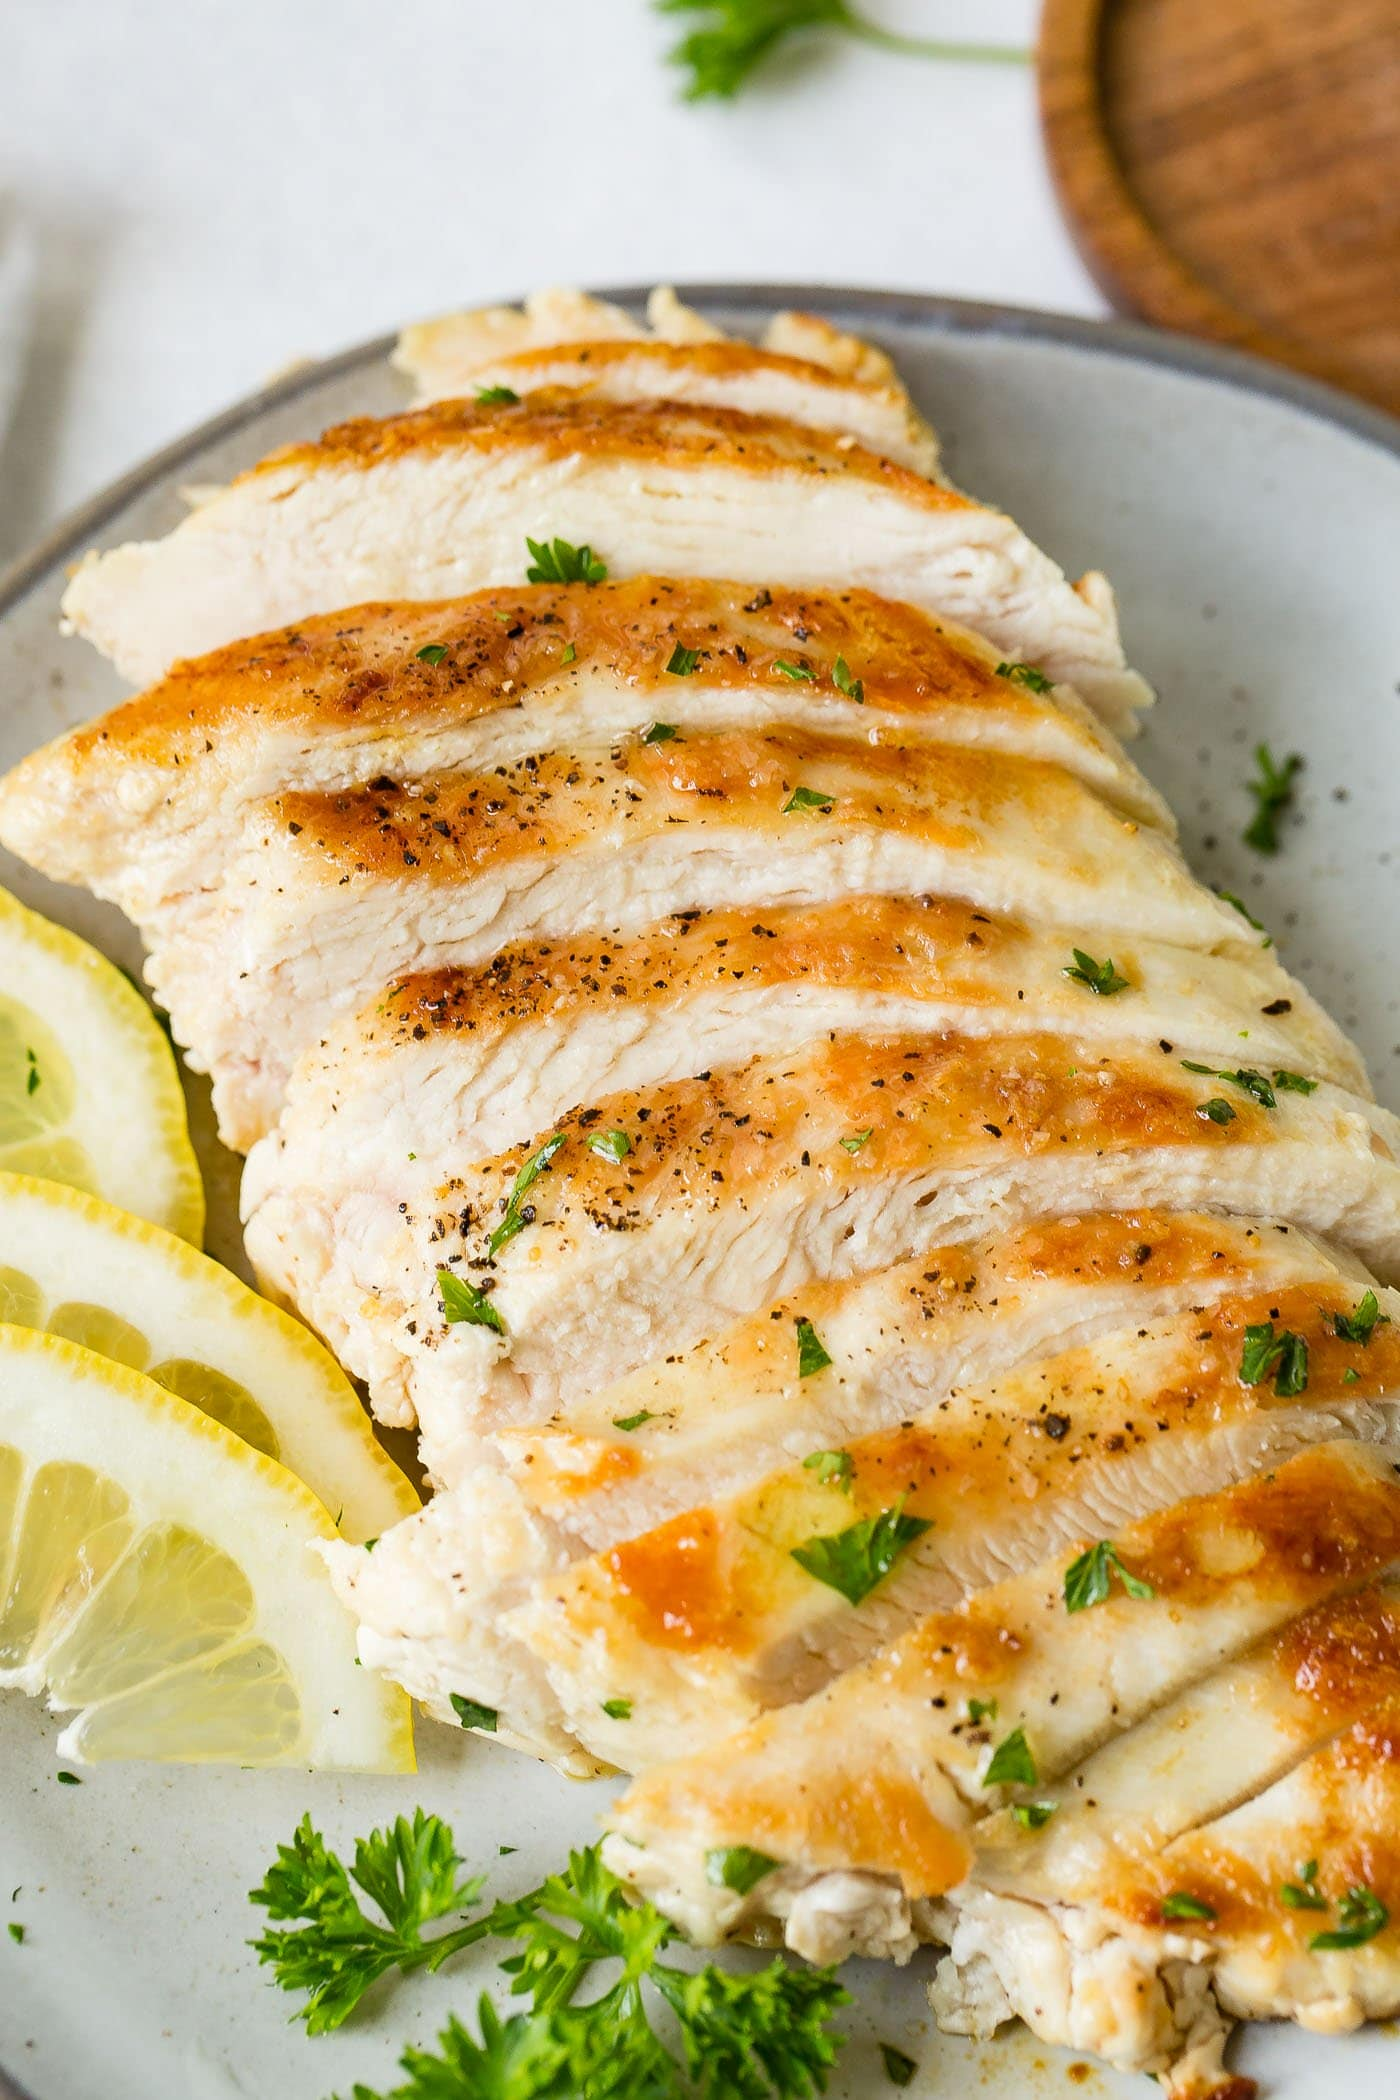 A perfectly cooked chicken breast that has been sliced.  There are slices of lemon next to the chicken and a few fresh parsley leaves are scattered on to of the chicken.